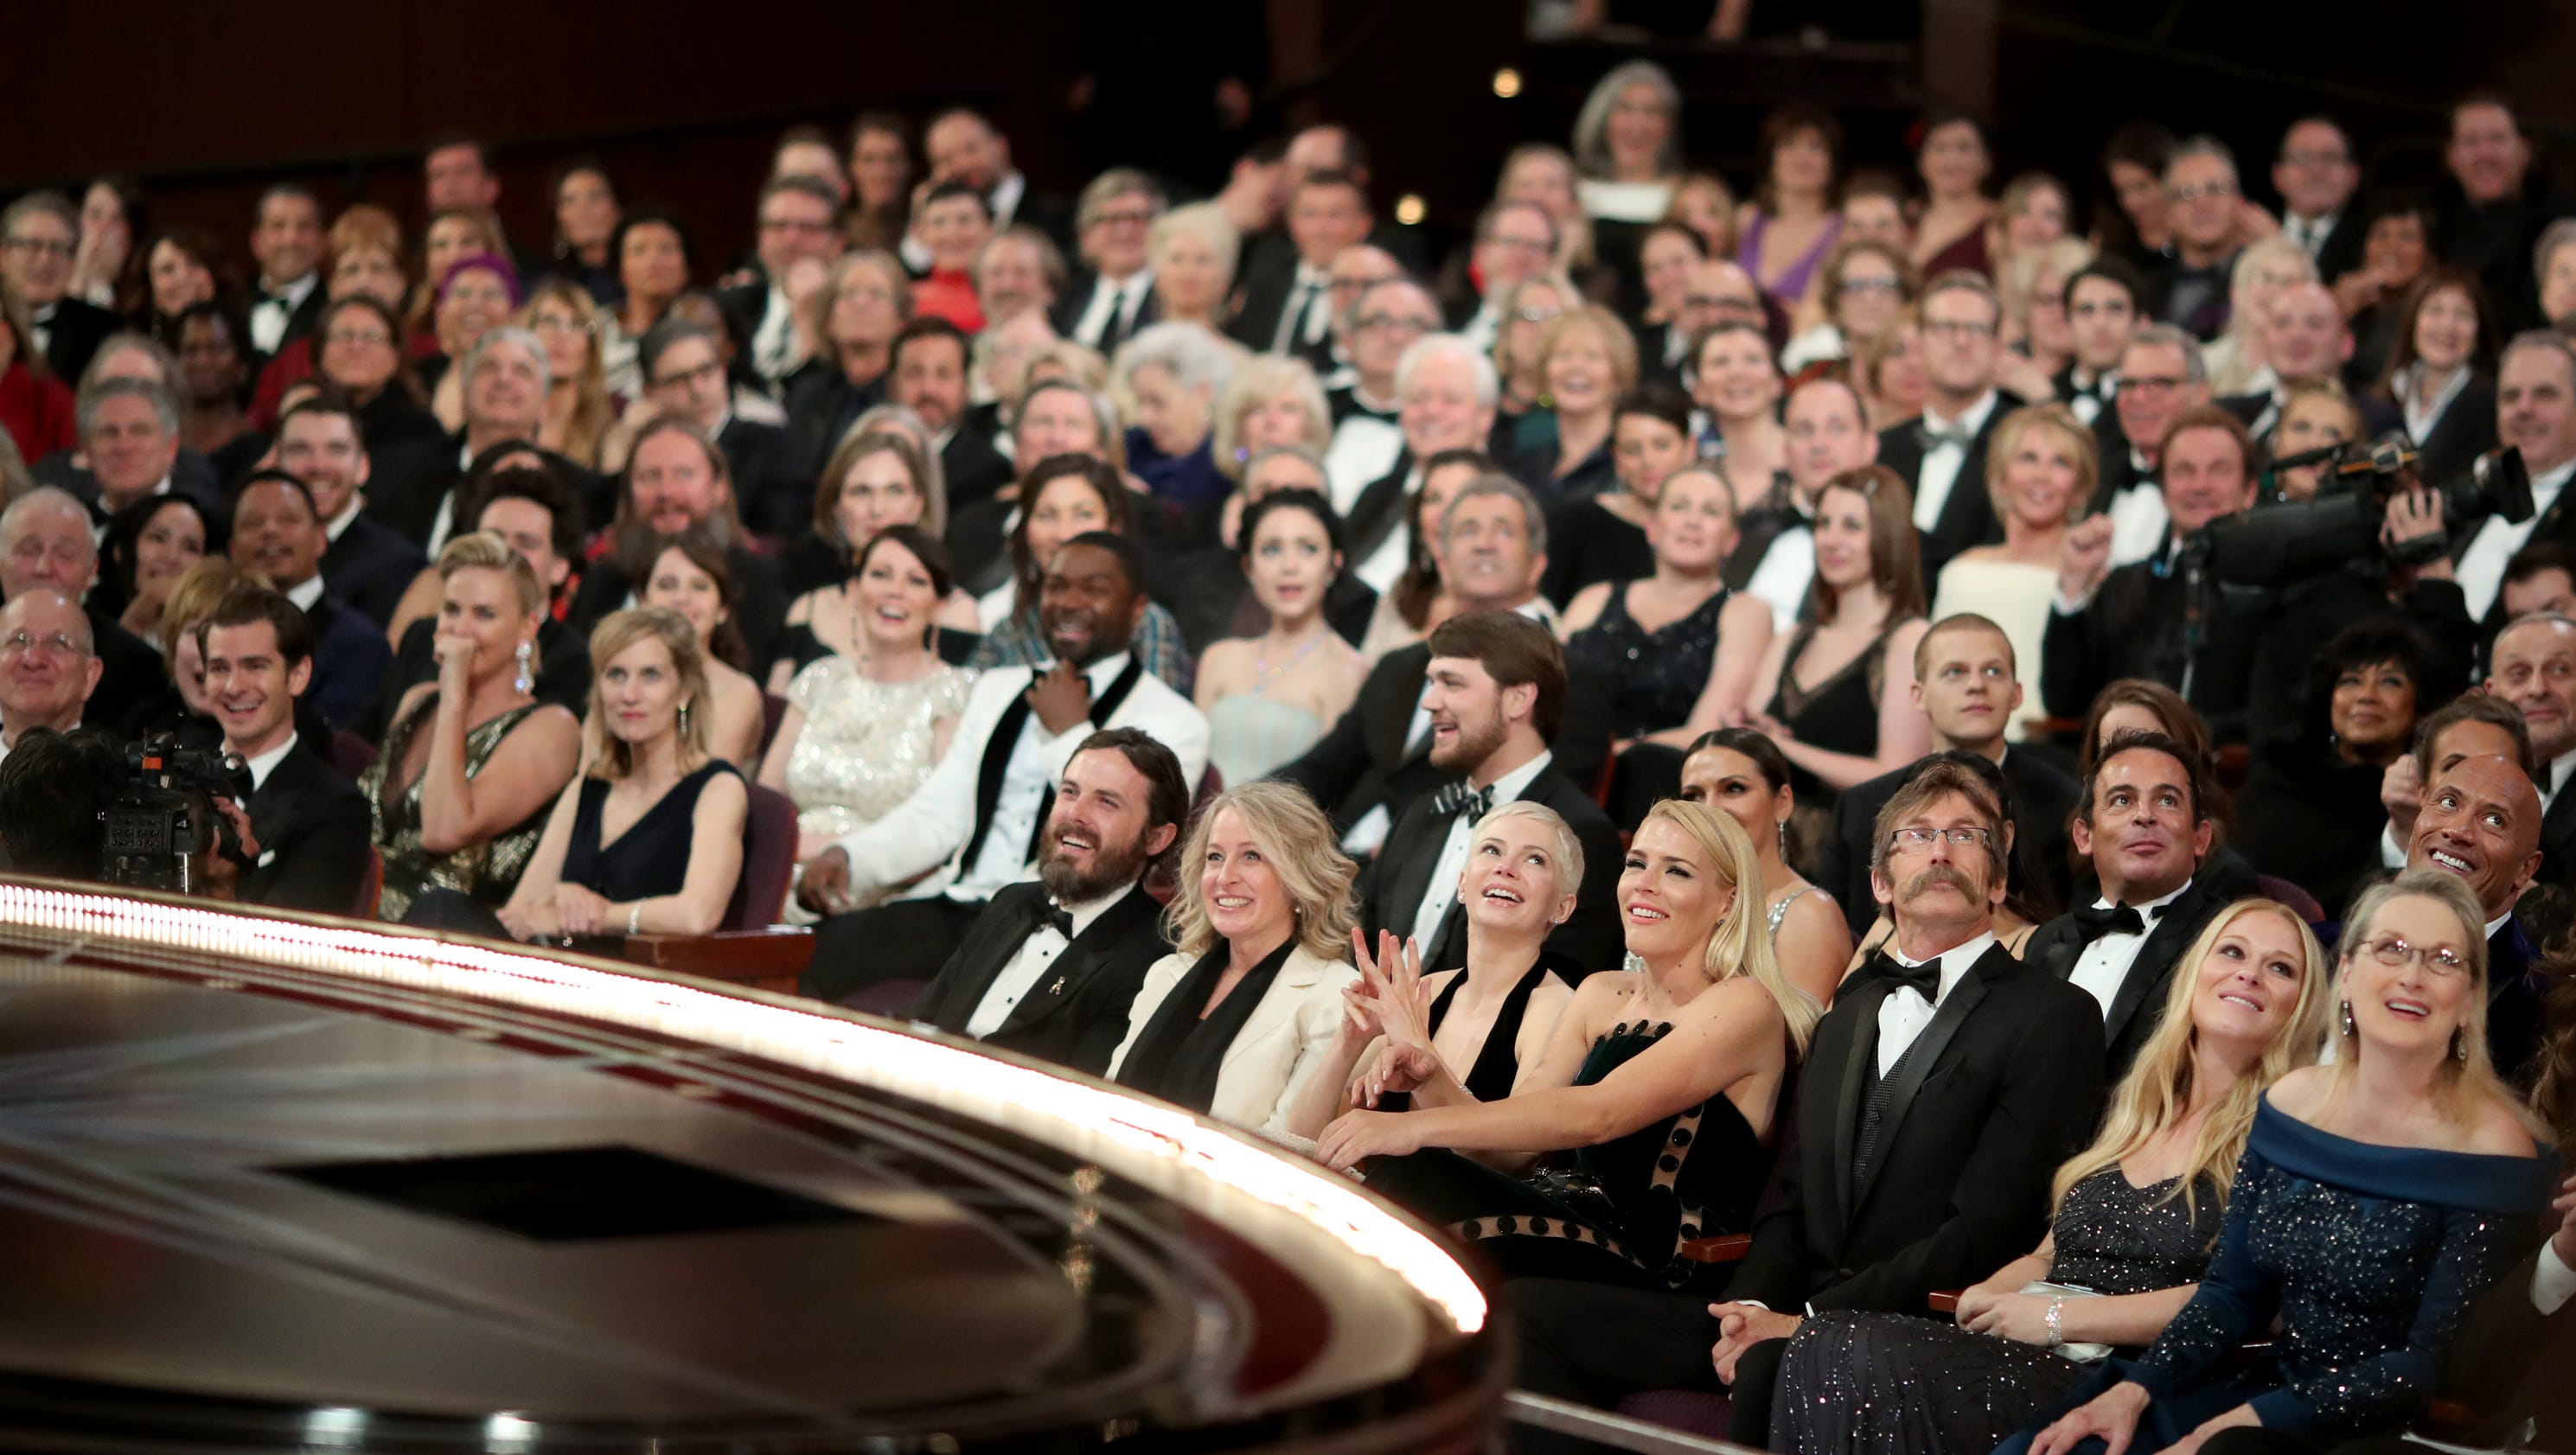 See Priceless Photos Of The Oscars Audience Reacting To